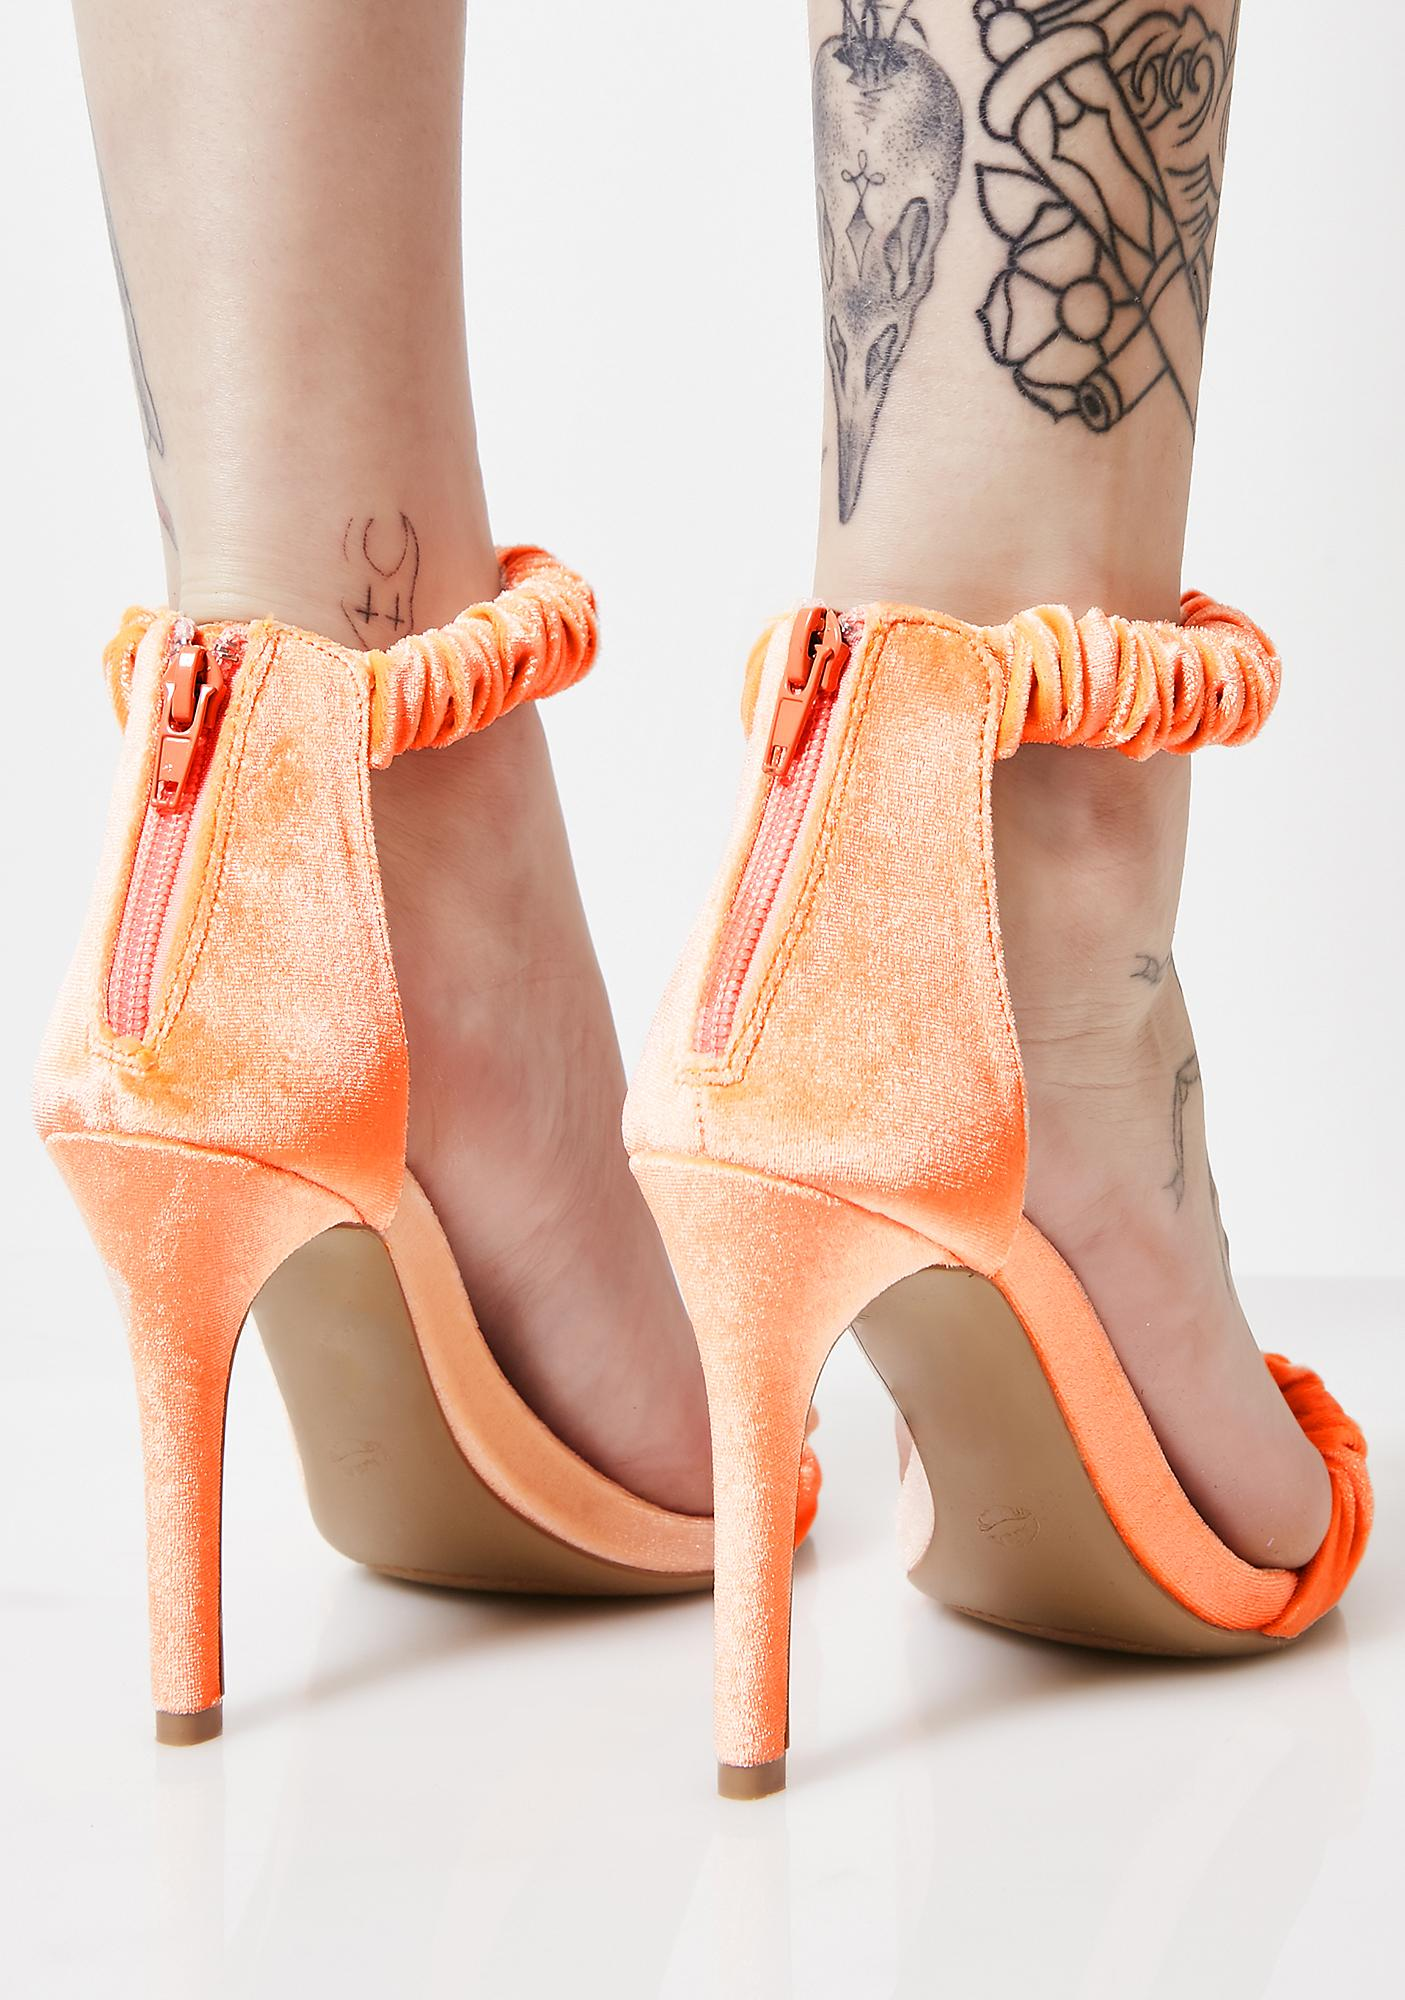 Creamsicle Jazzercise Your Mind Velvet Heels